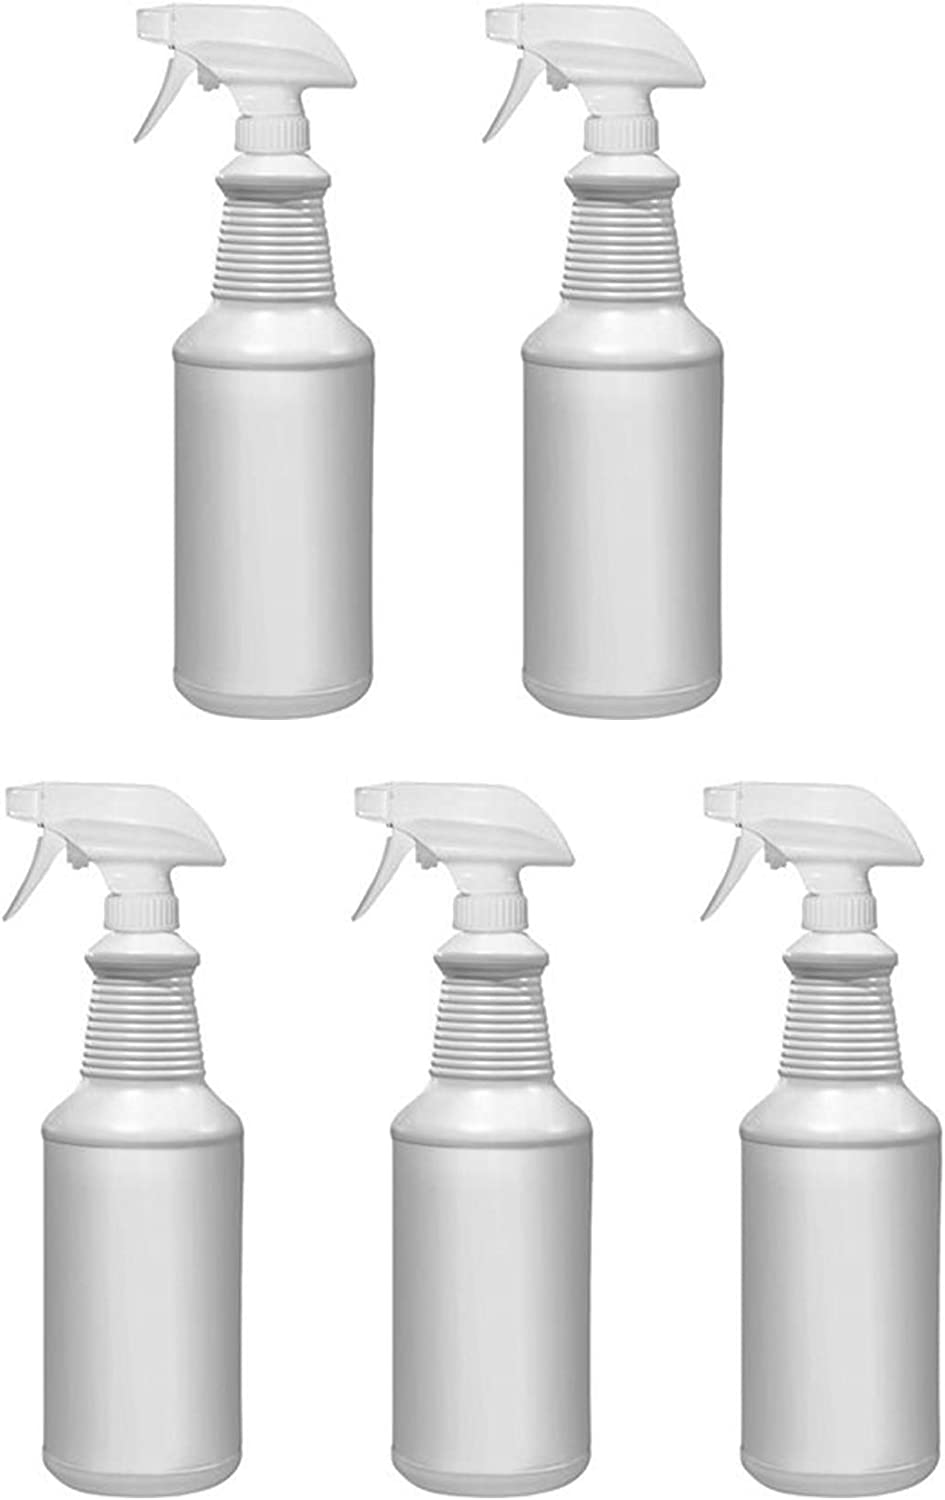 5 Pack 32 Oz All-Purpose HDPE Heavy with Bottles Adju Spray Ranking TOP2 price Duty